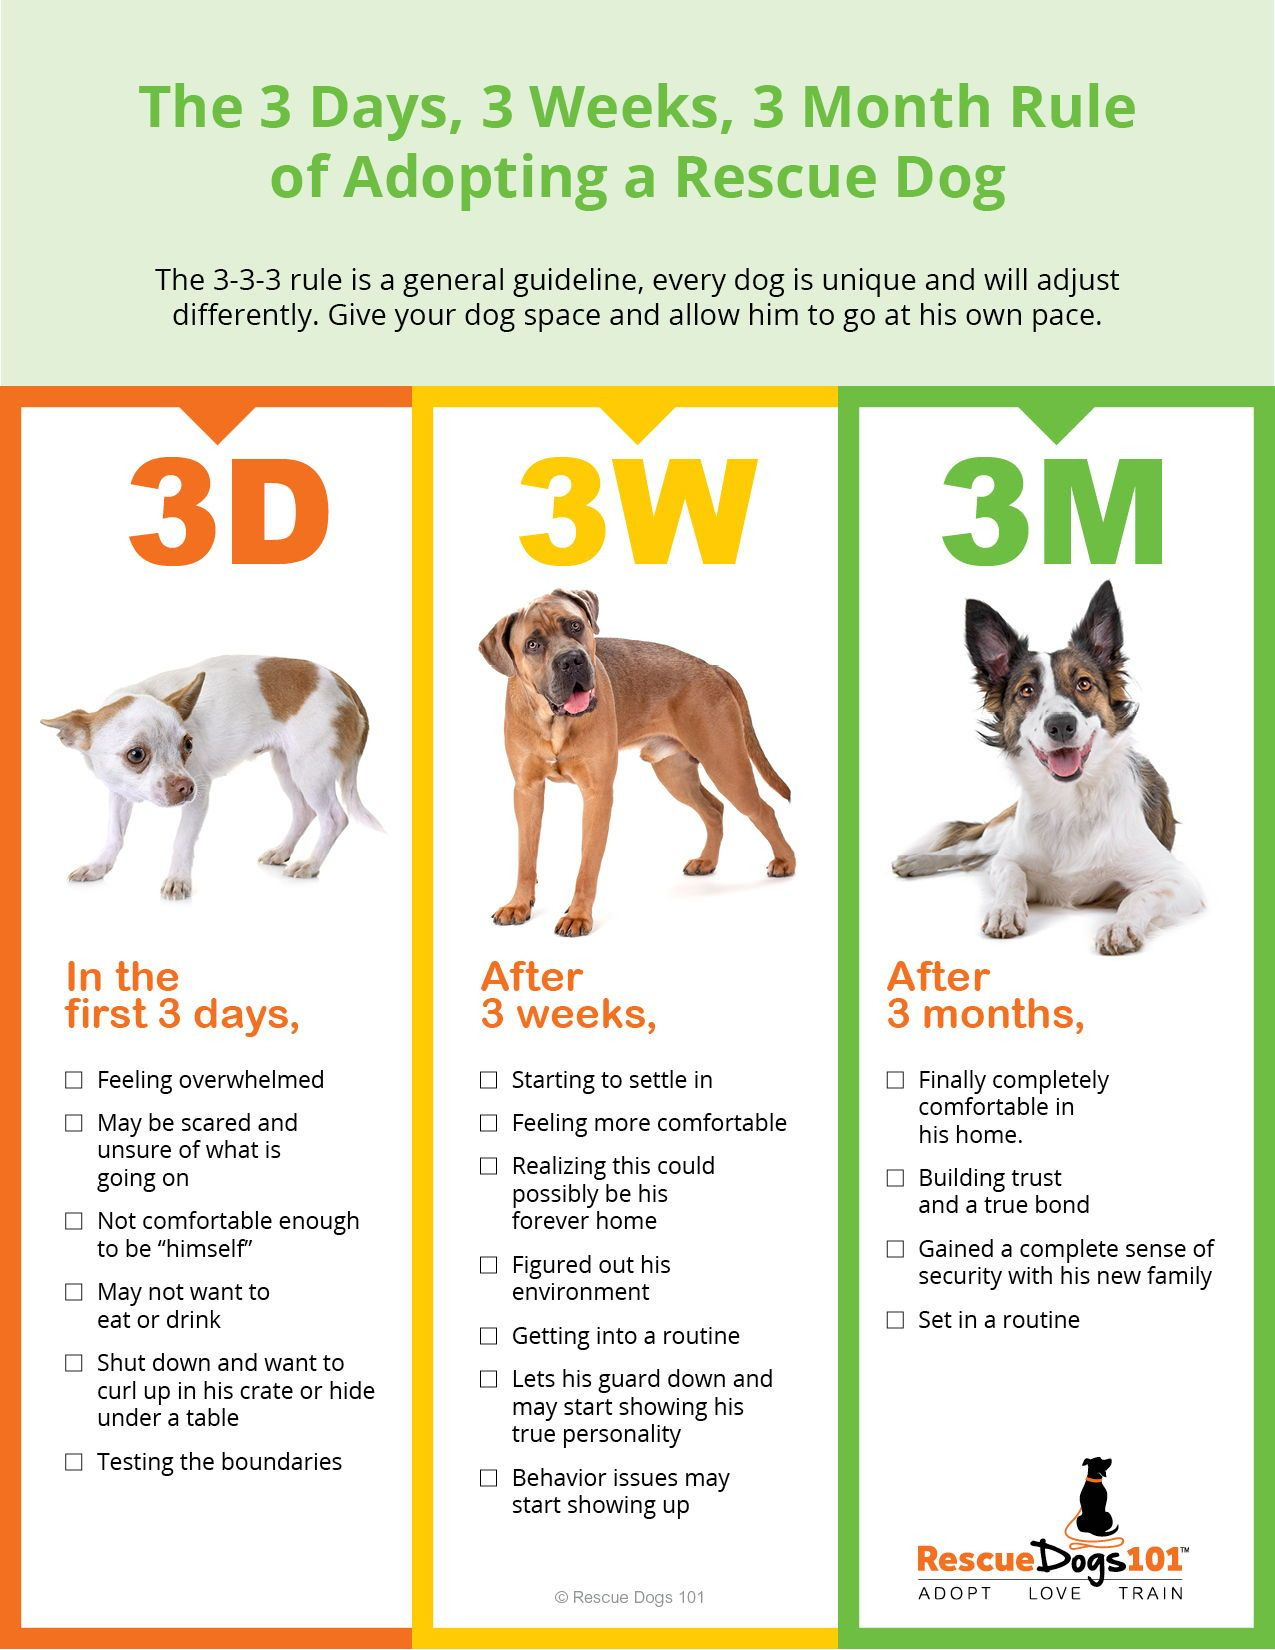 Creating Your Perfect Family Dog Adopt Love Train Rescue